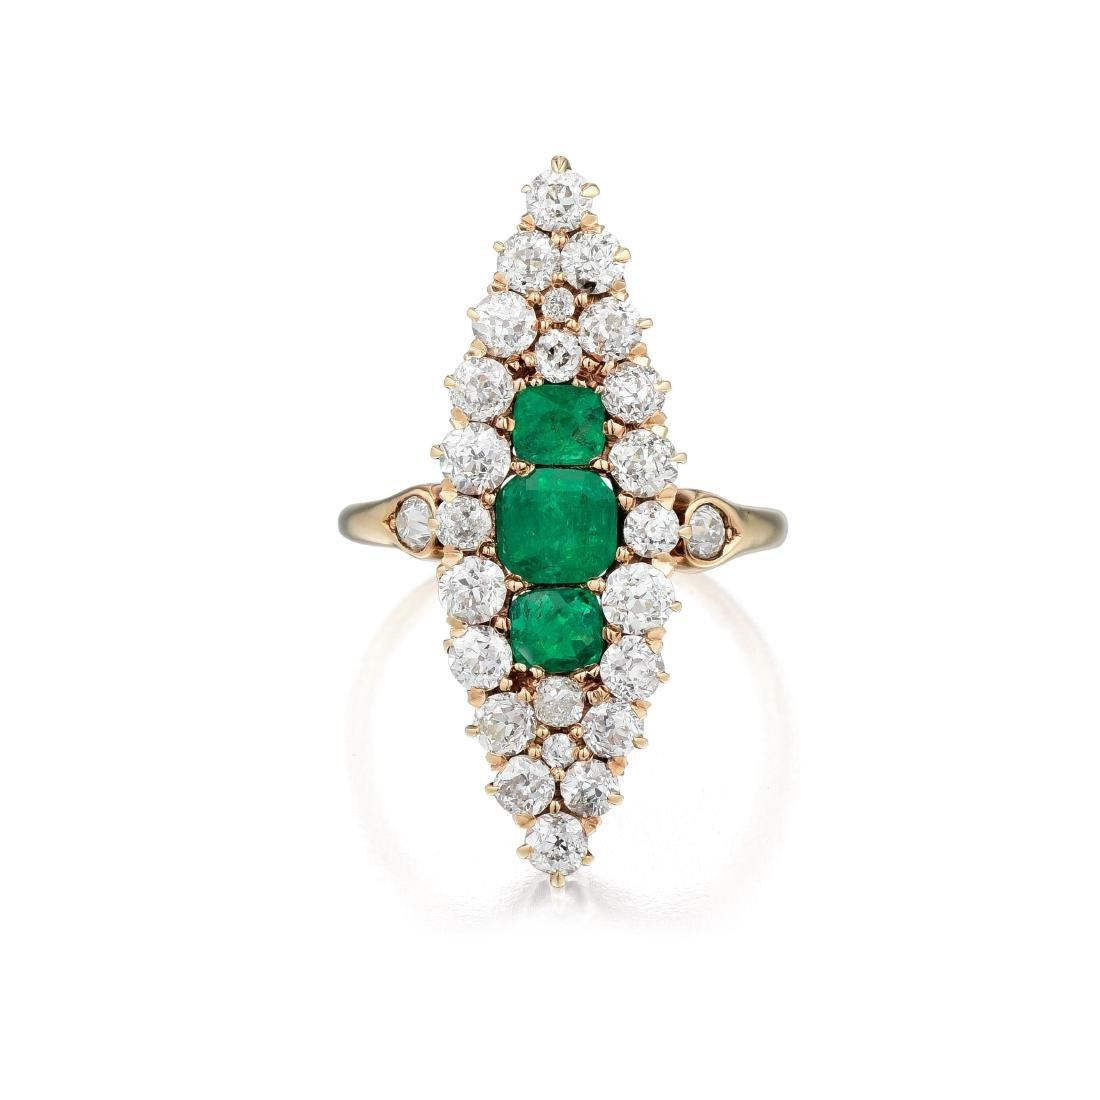 Antique 14K Gold Emerald and Diamond Ring